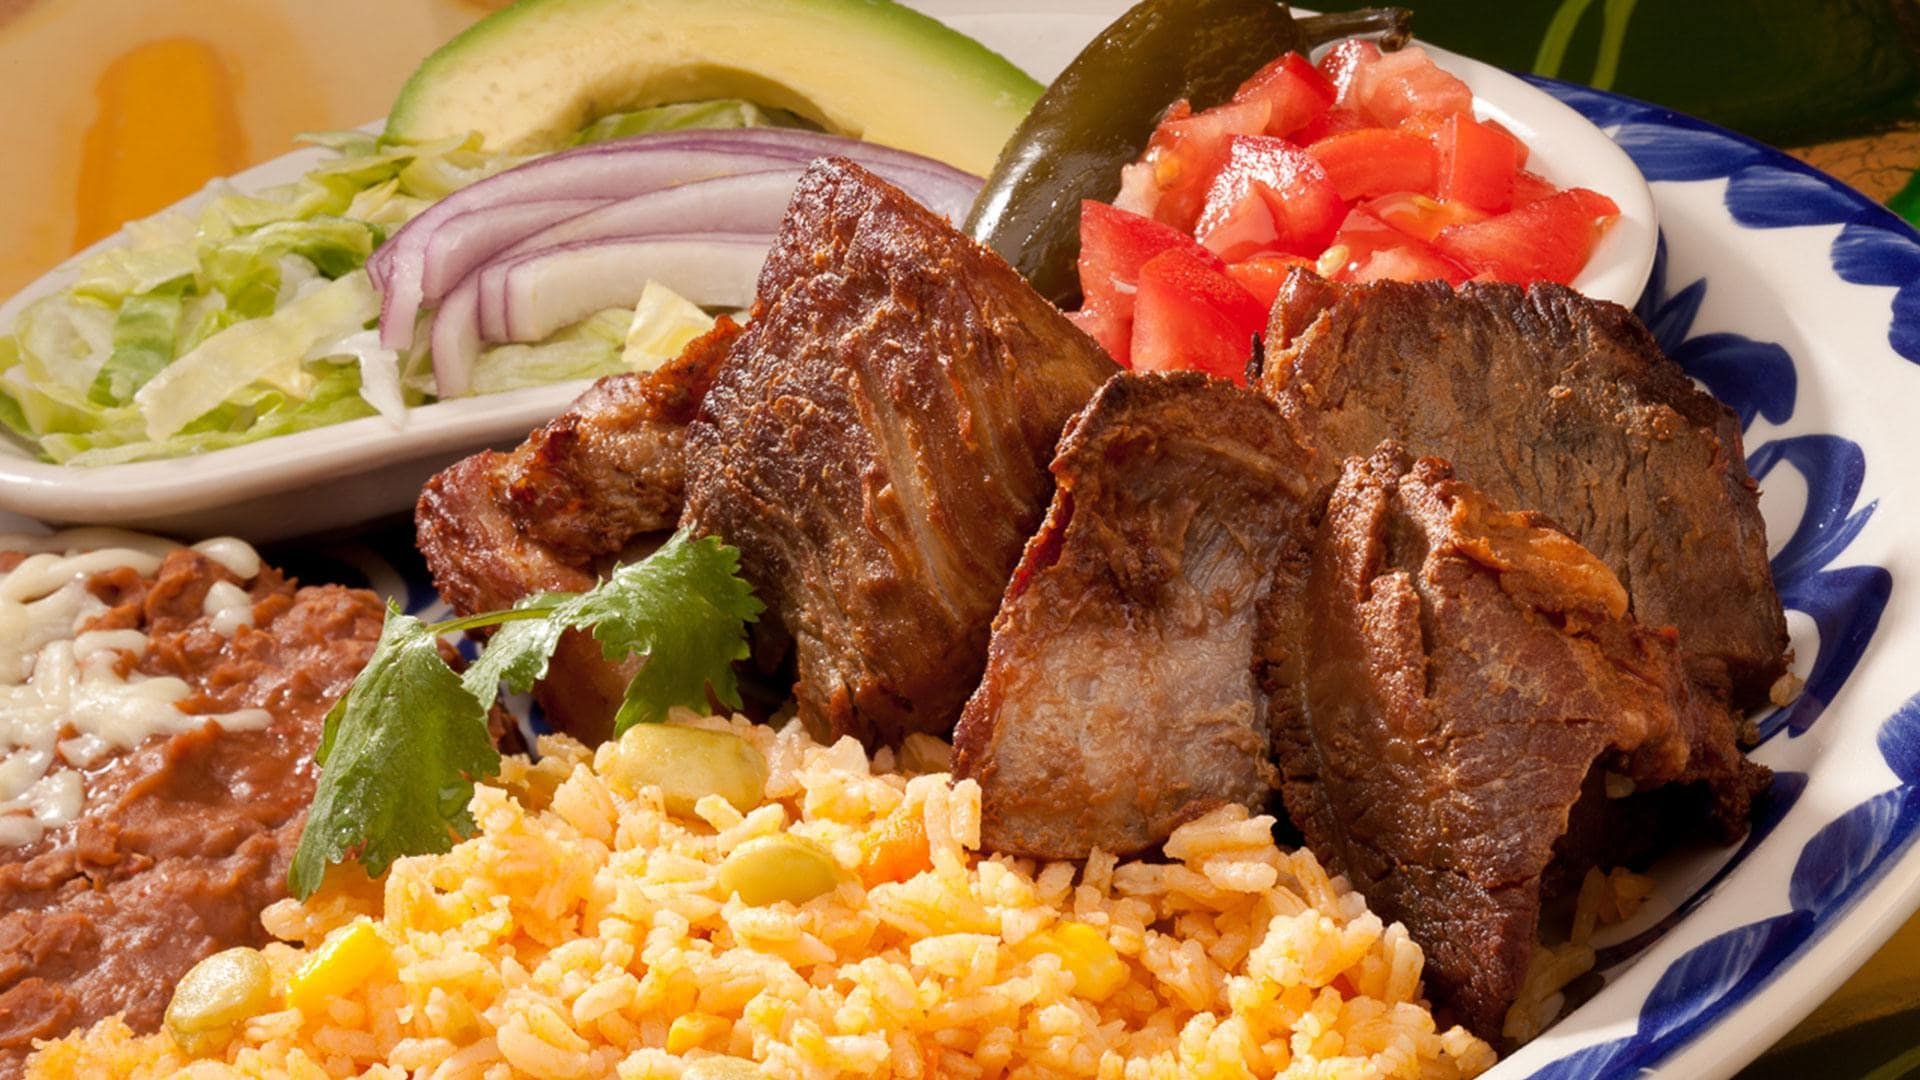 Menu authentic mexican cuisine la mesa mexican restaurant for Authentic cuisine